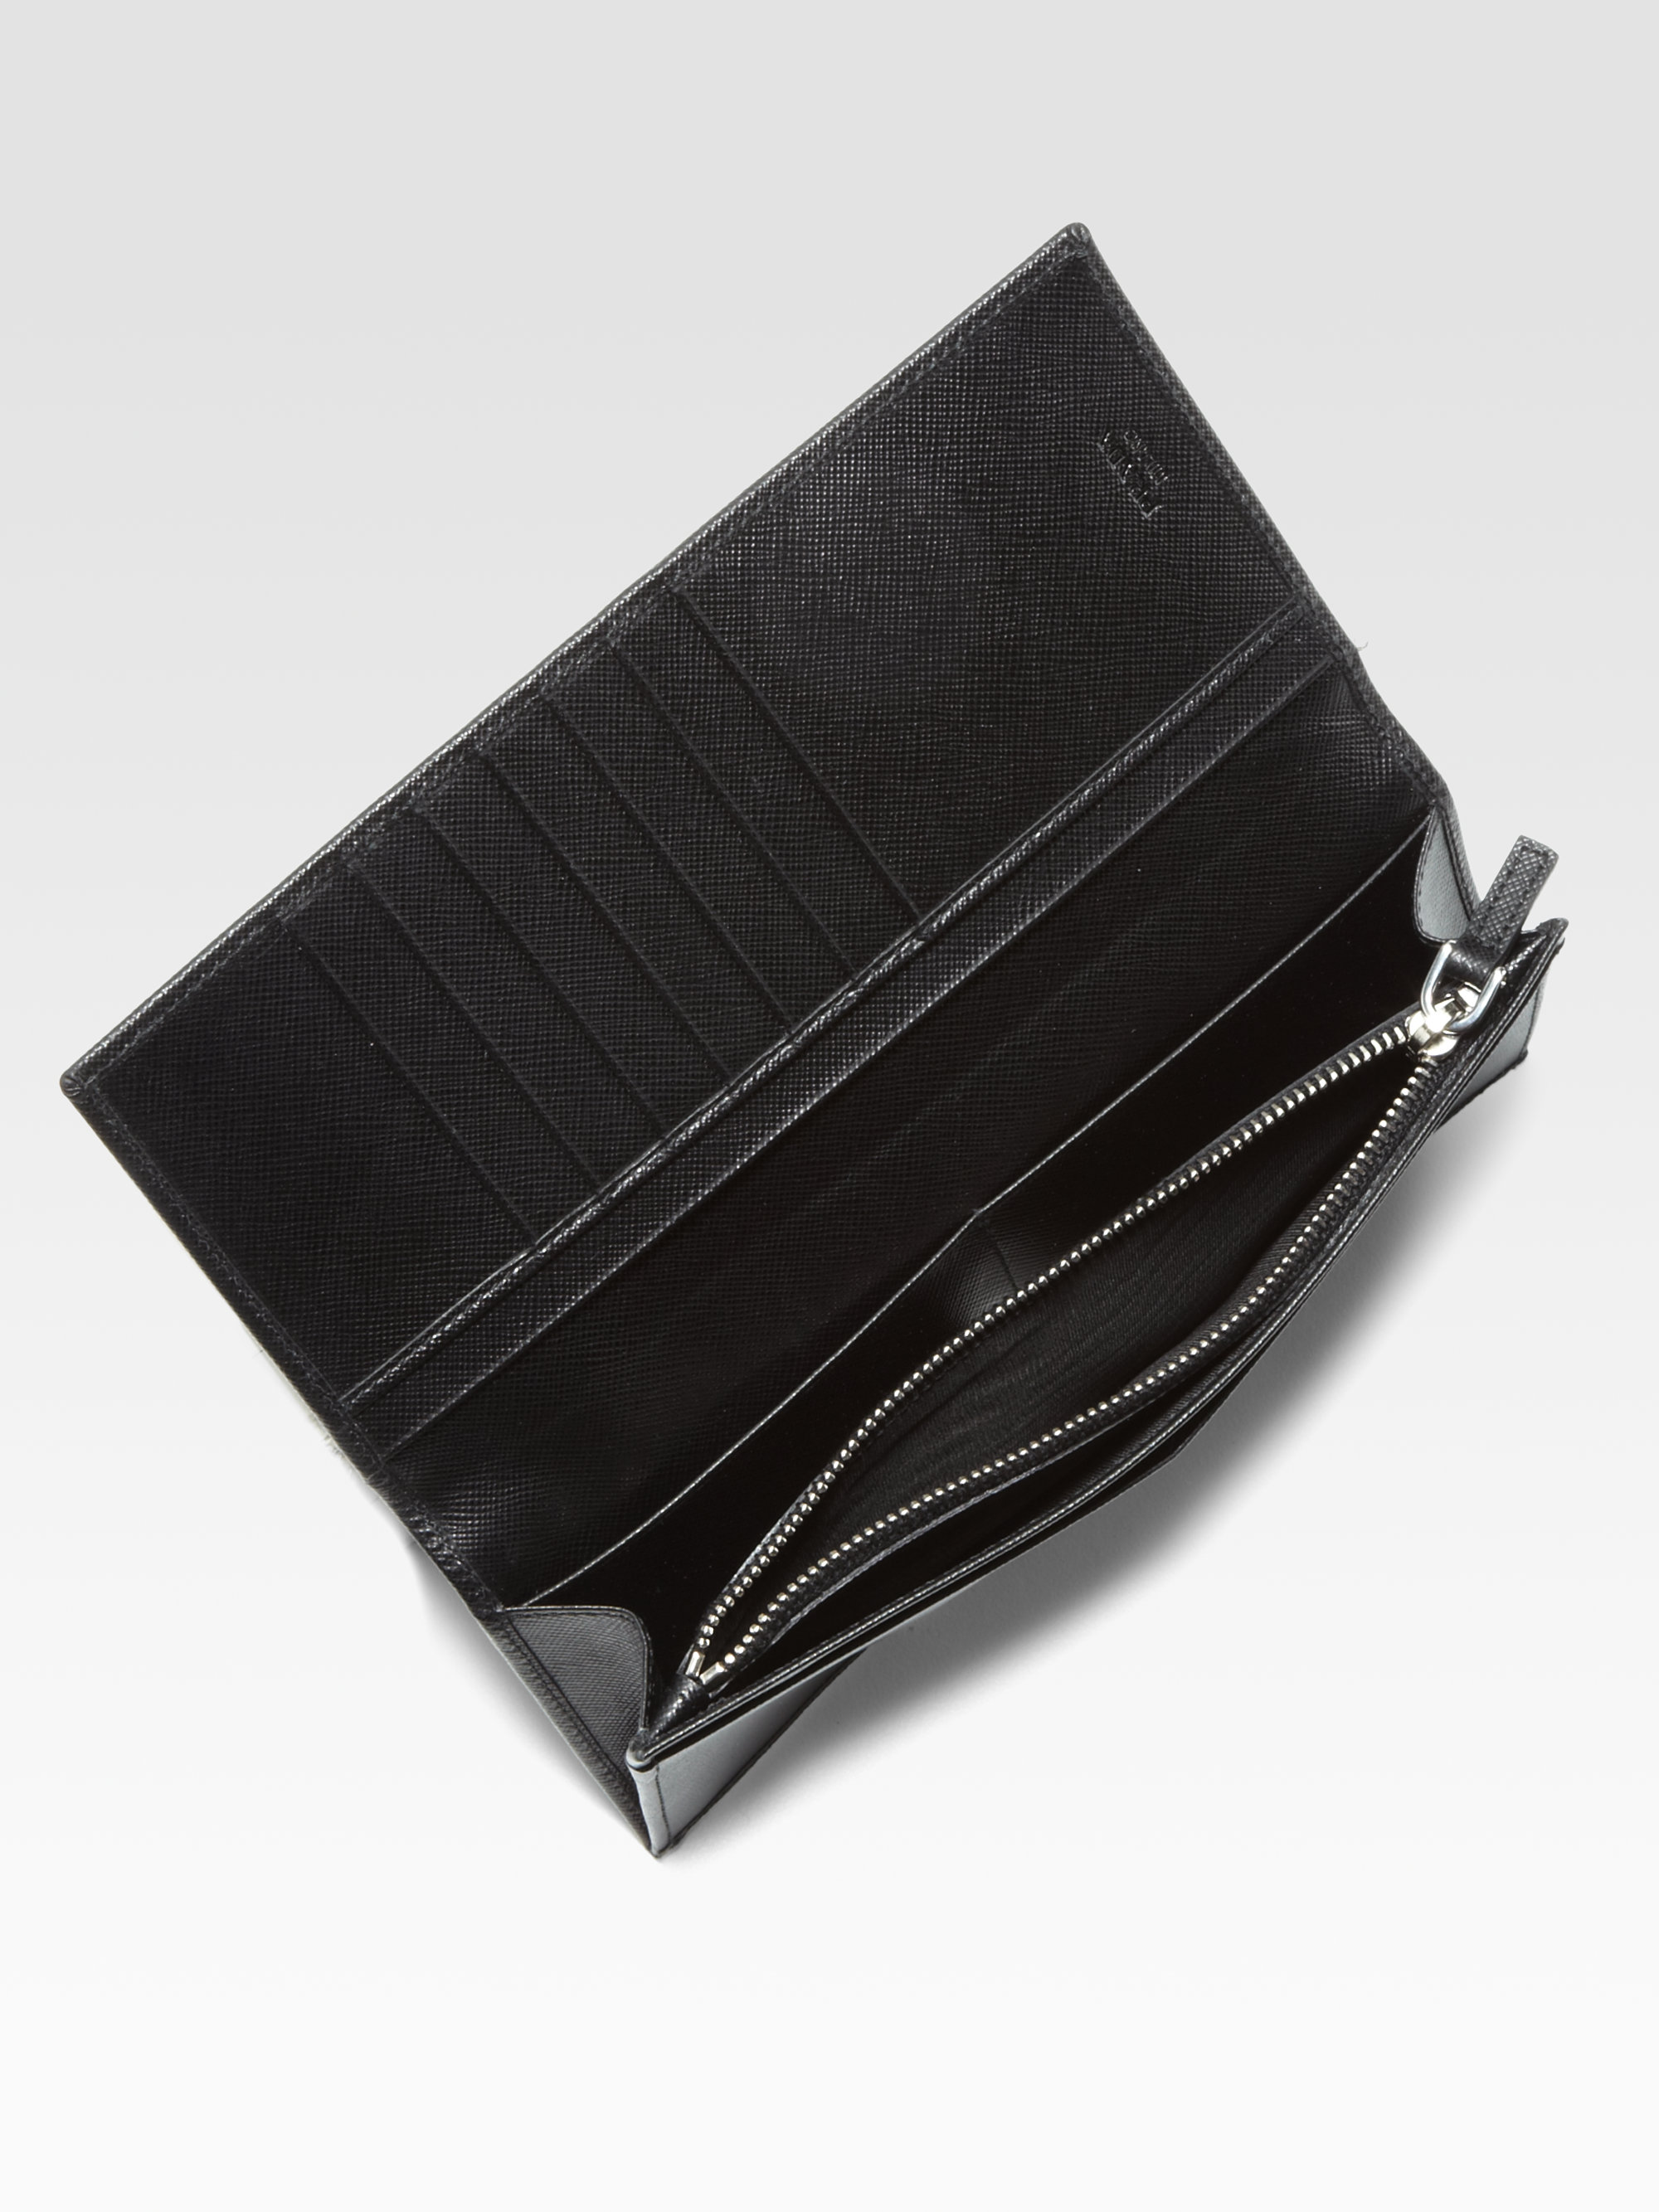 discounted prada bag - prada black leather wallet